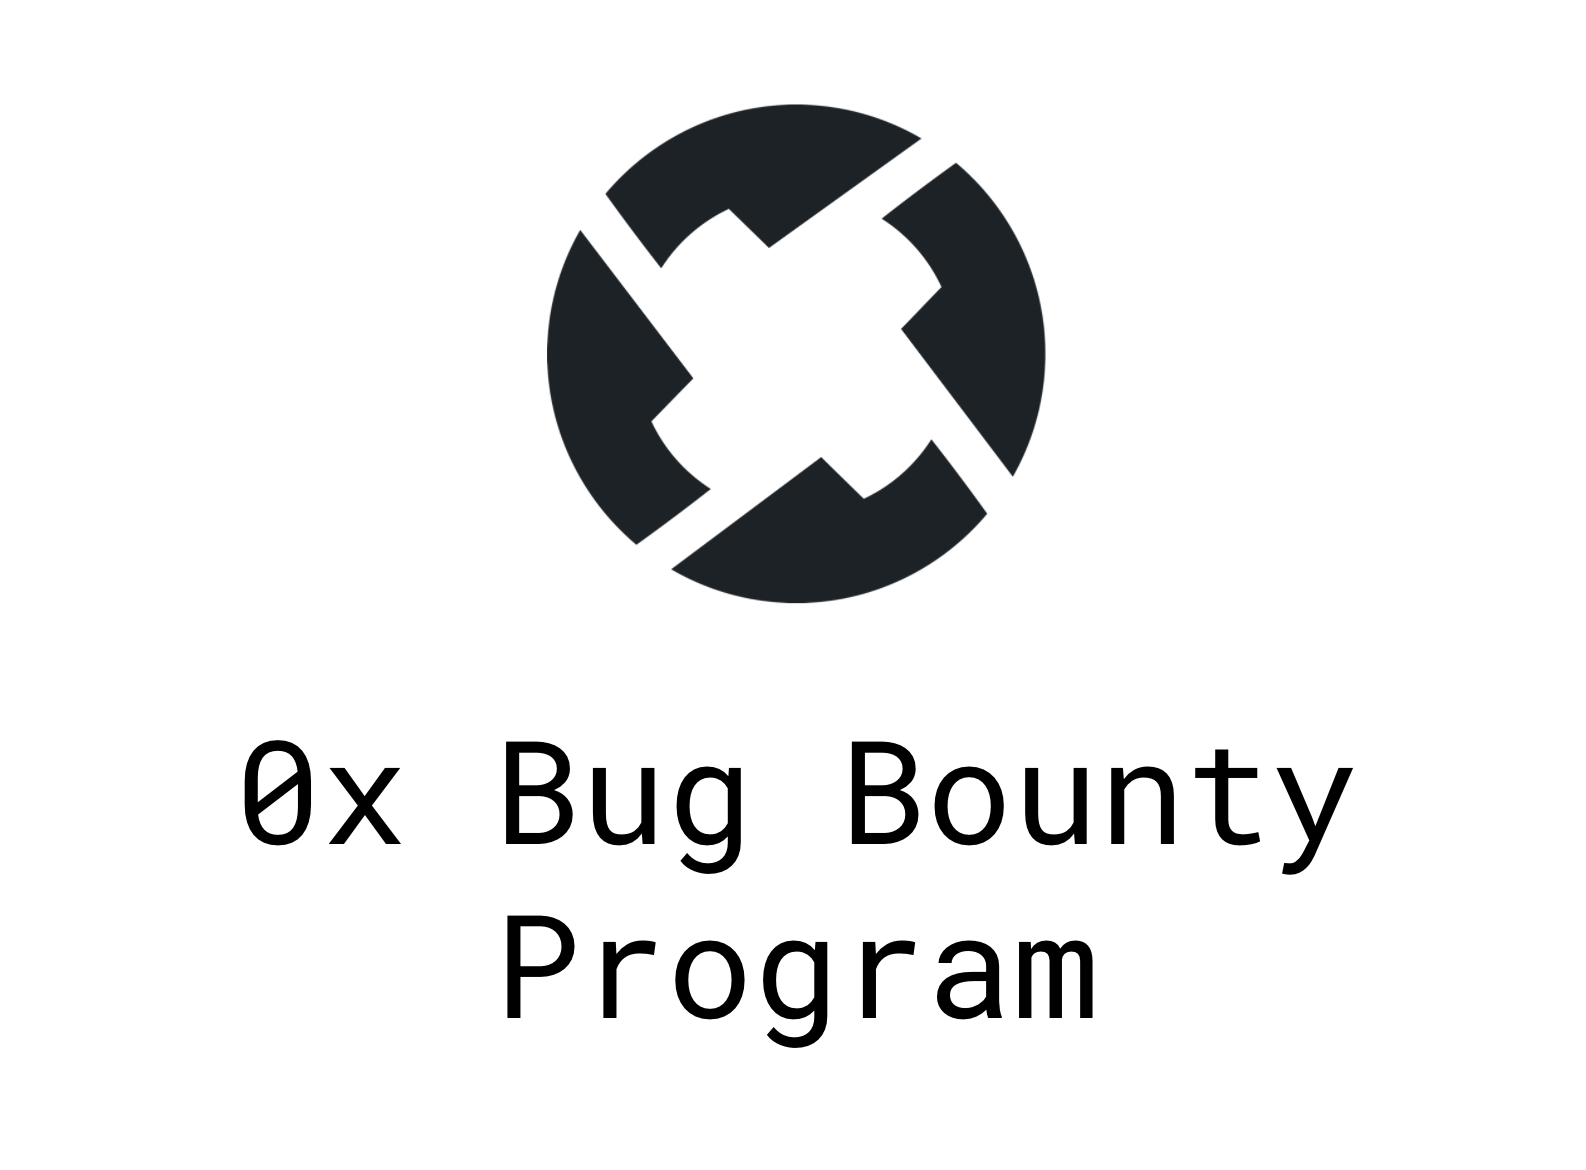 Bug Bounty Instructions 0x Protocol